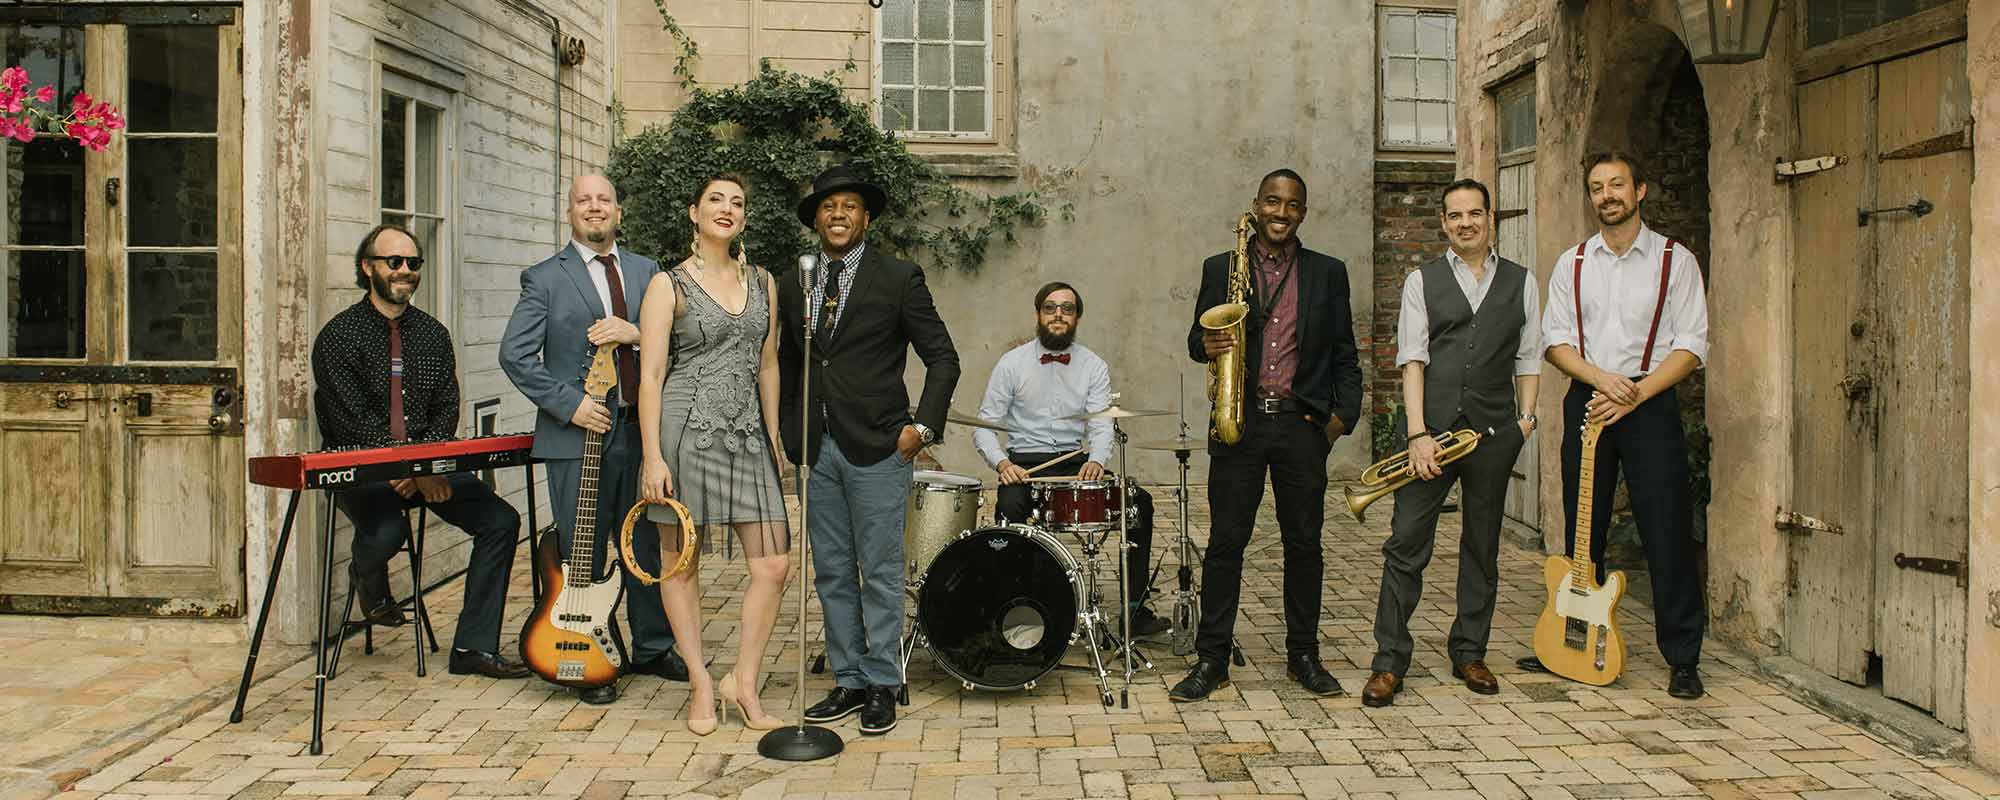 Nola Dukes Band - Wedding Band  - Festivals